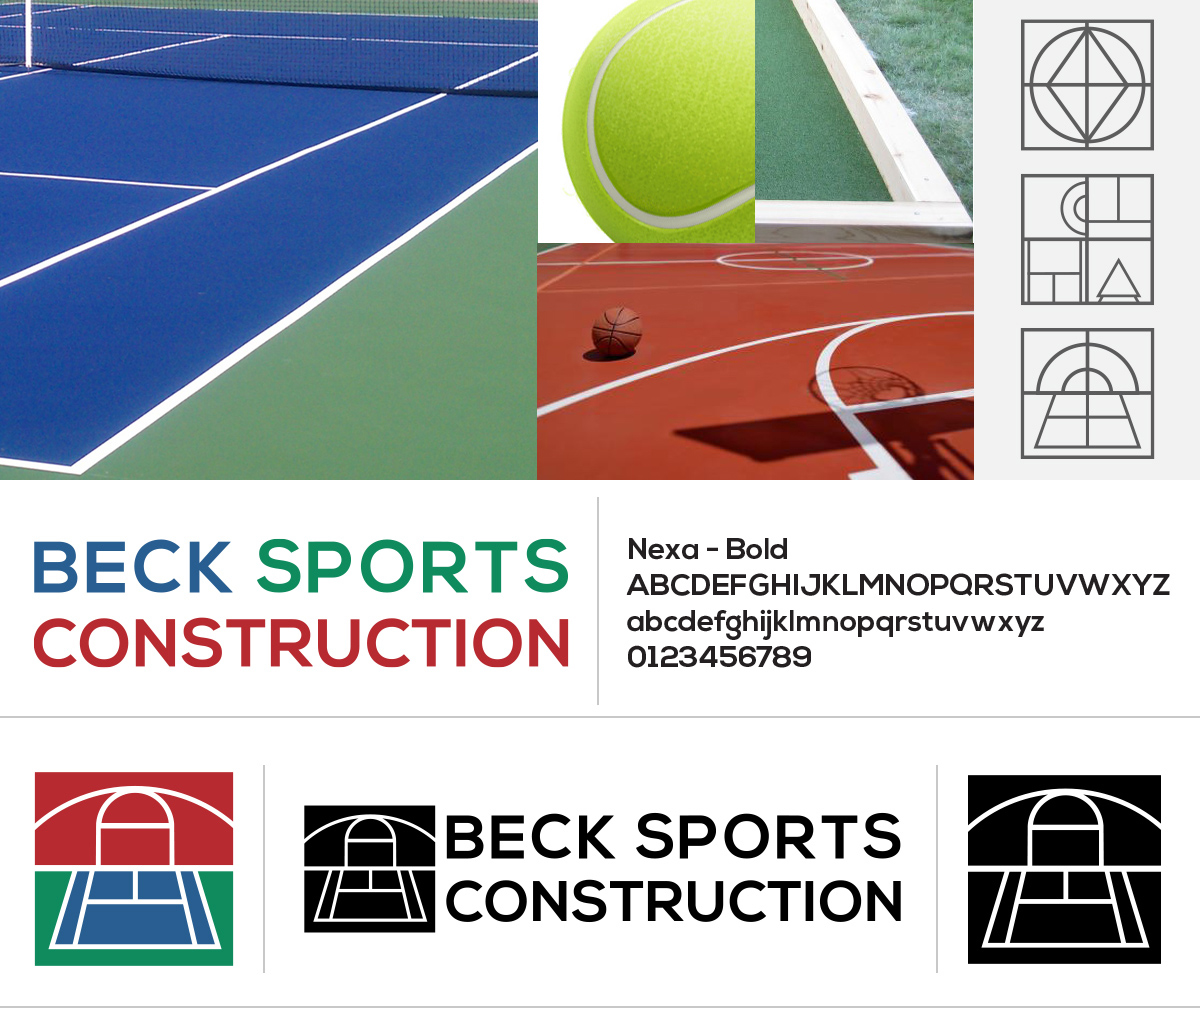 danni-goodman-branding-beck-sports-construction02.jpg